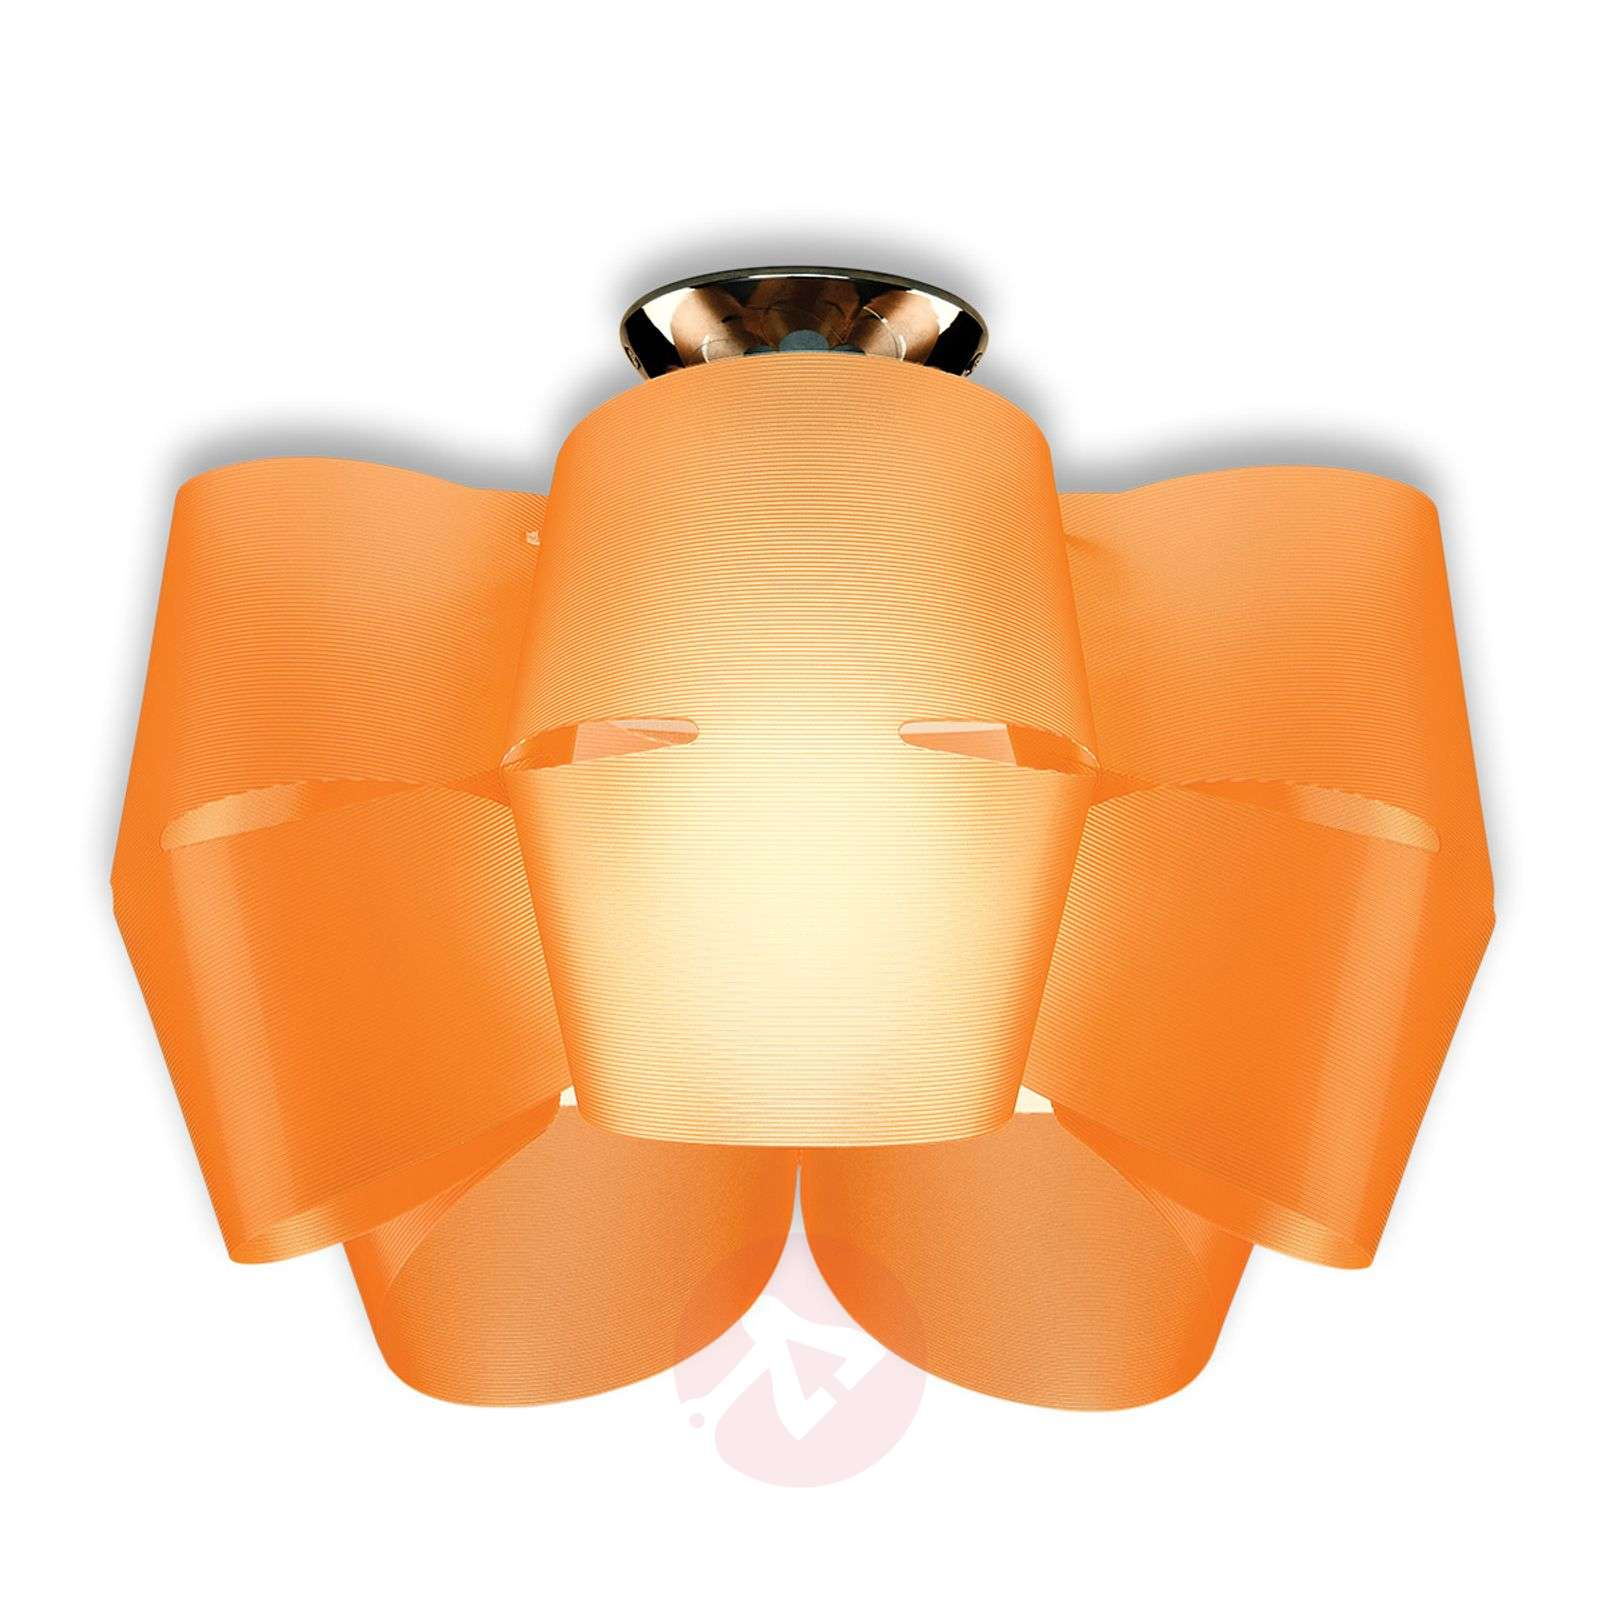 Sky Mini Alien orange ceiling light-1056076-01